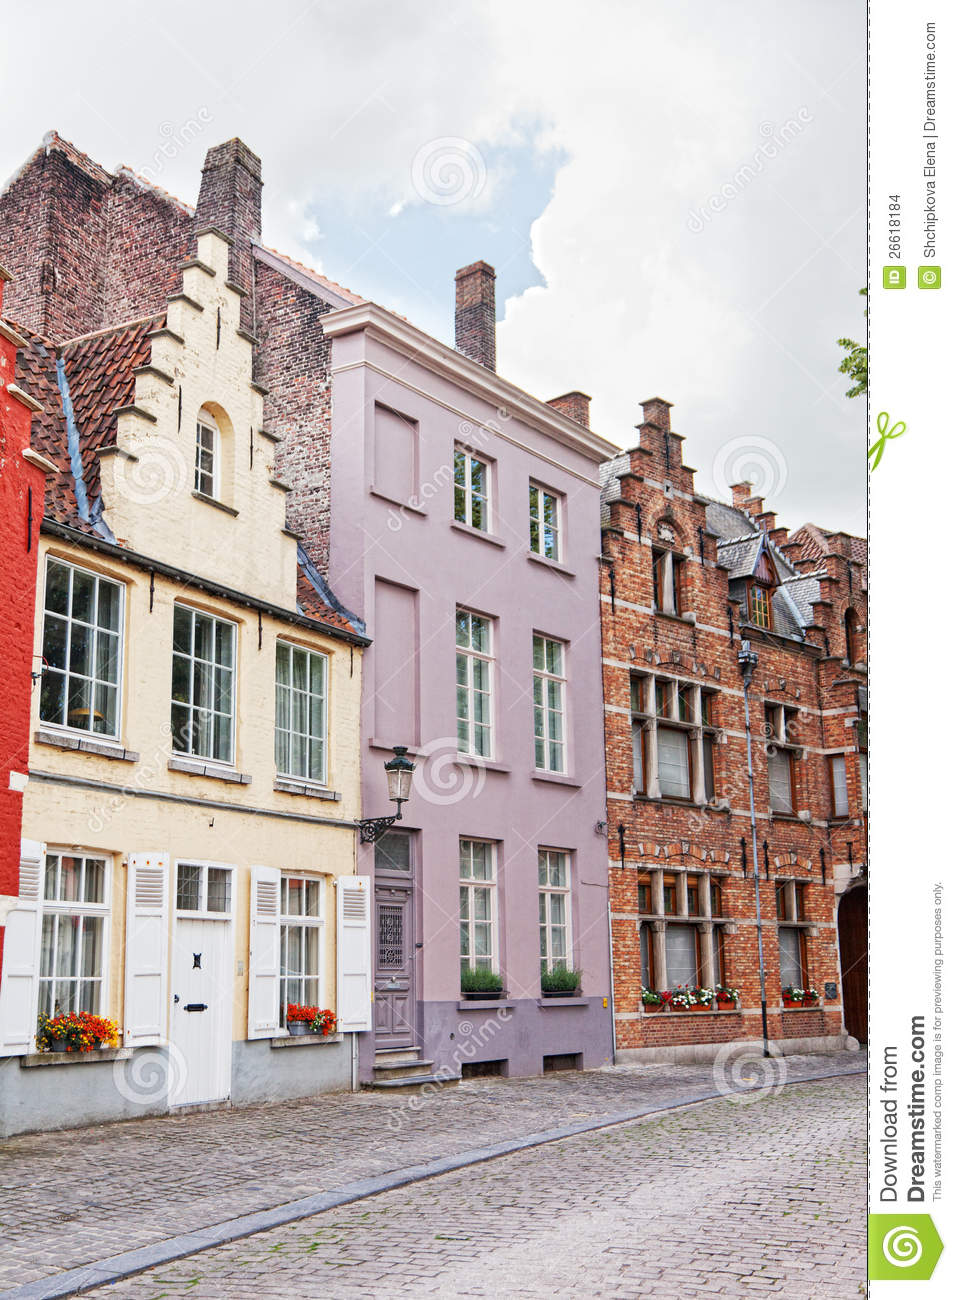 Bruges belgium stock images image 26618184 - Small belgian houses brick ...